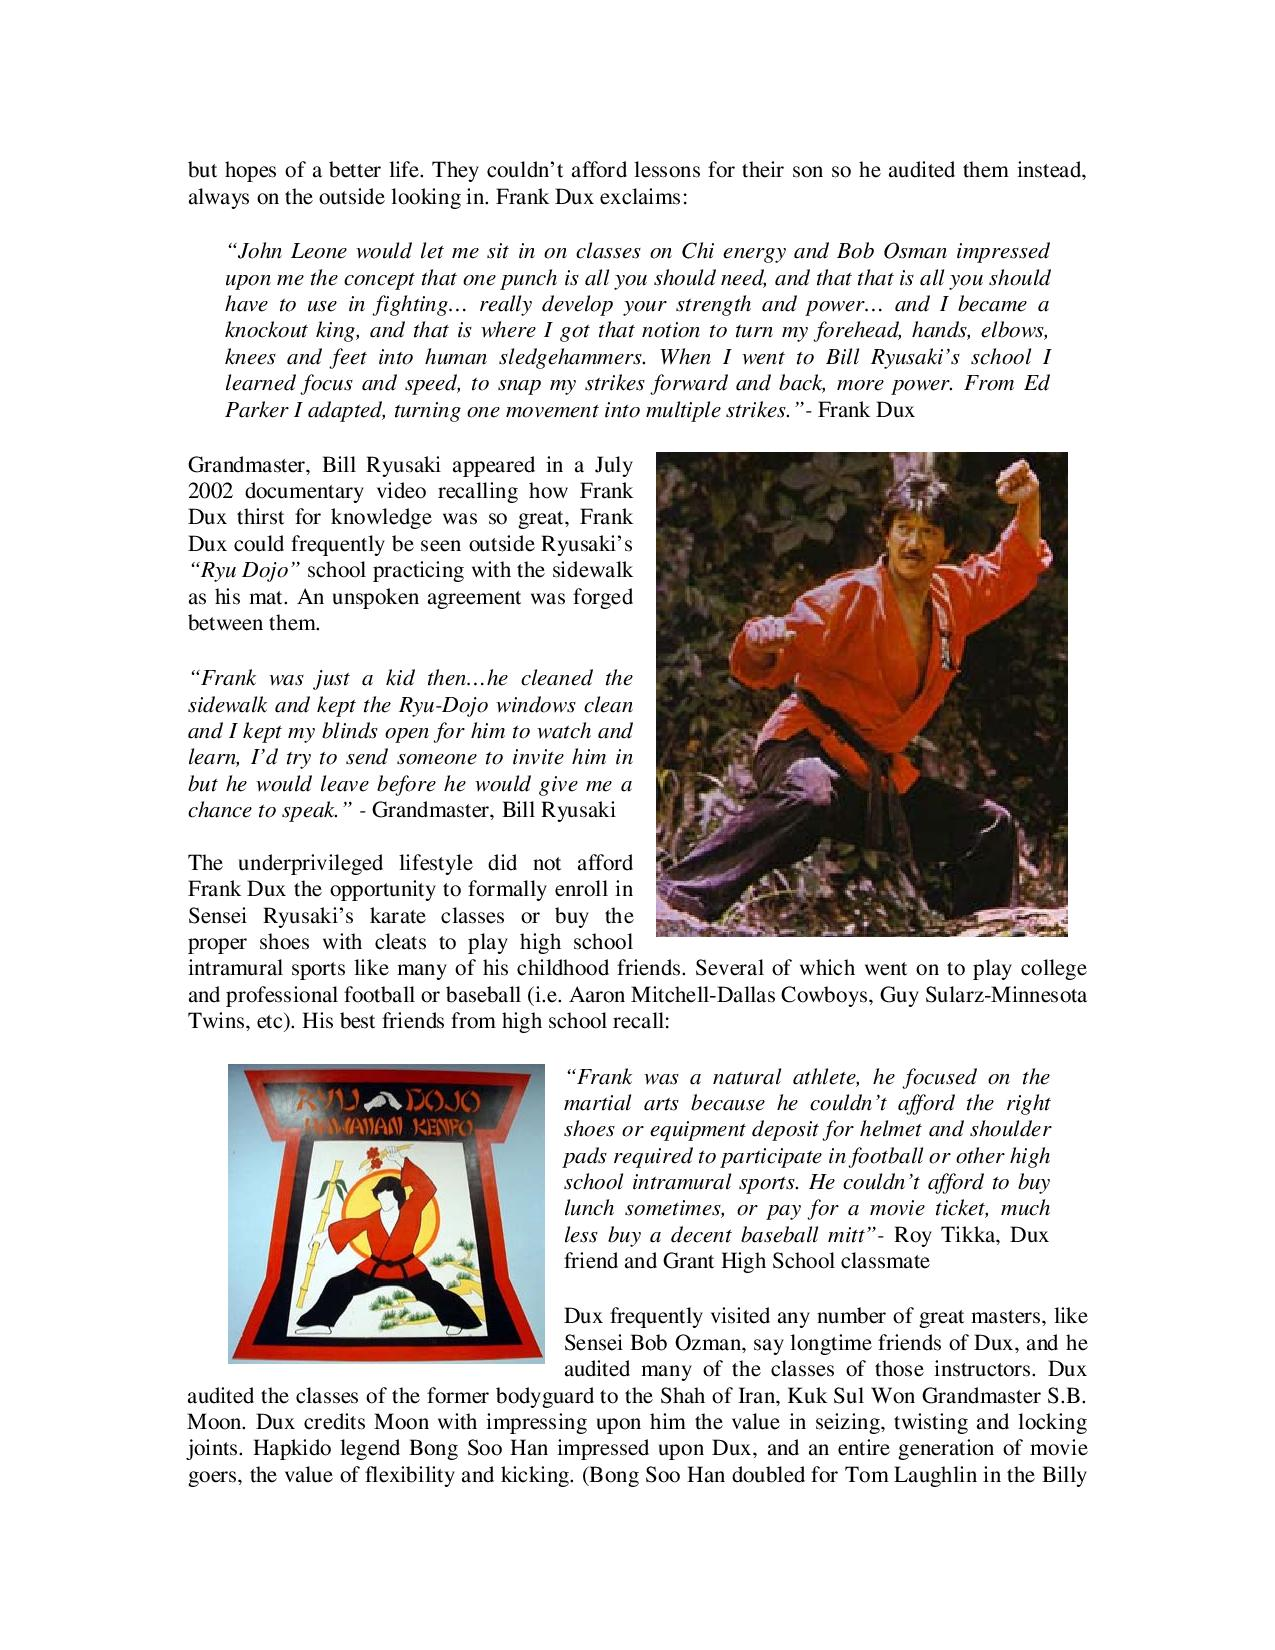 frank-dux-the-warrior-secure-page-005